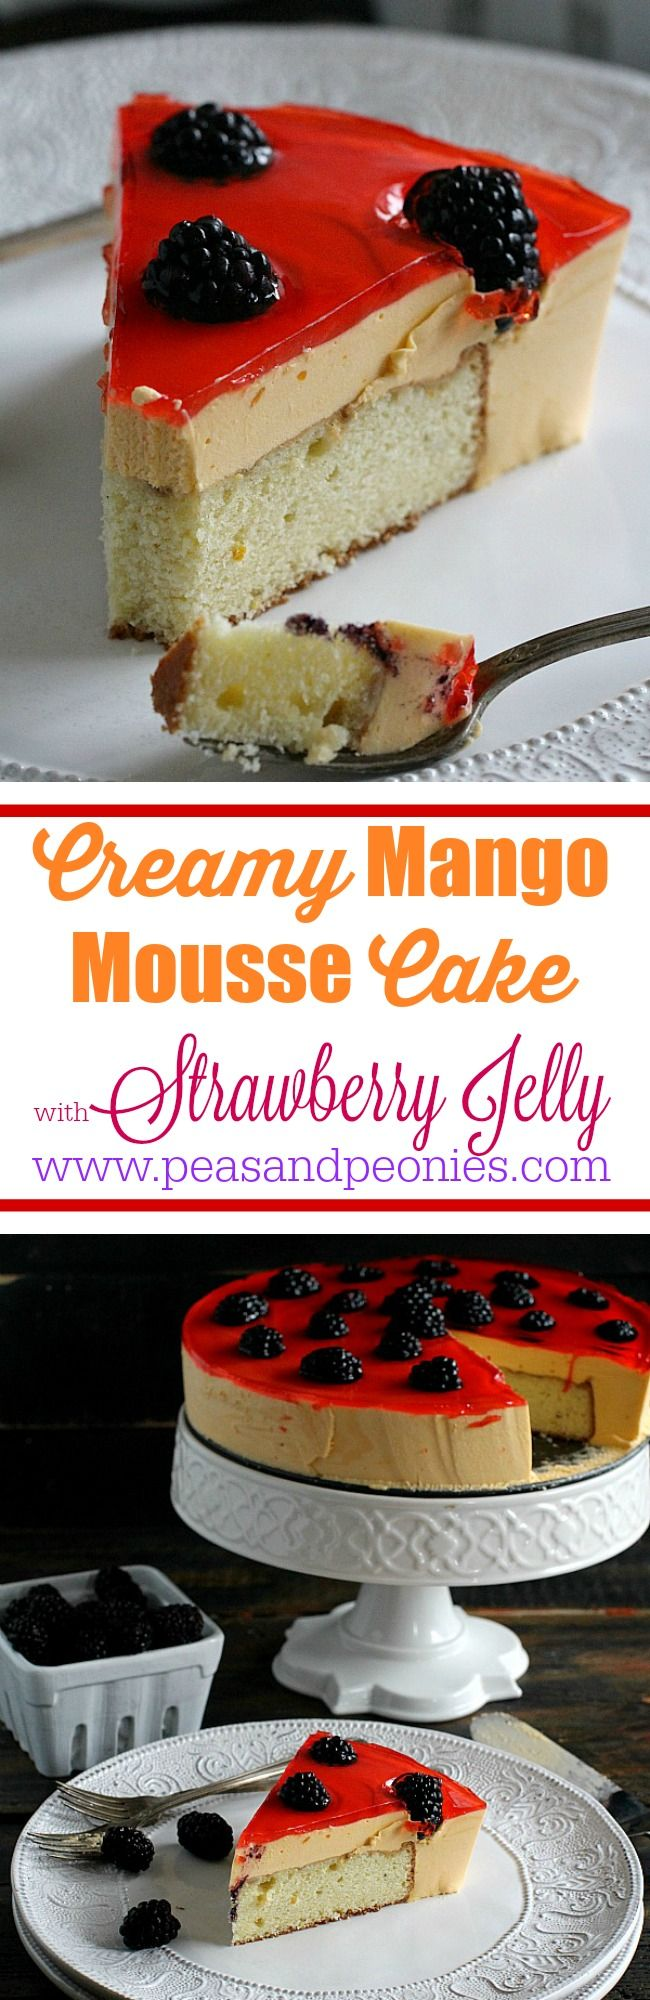 Best Mango Mousse Cake - Peas and Peonies